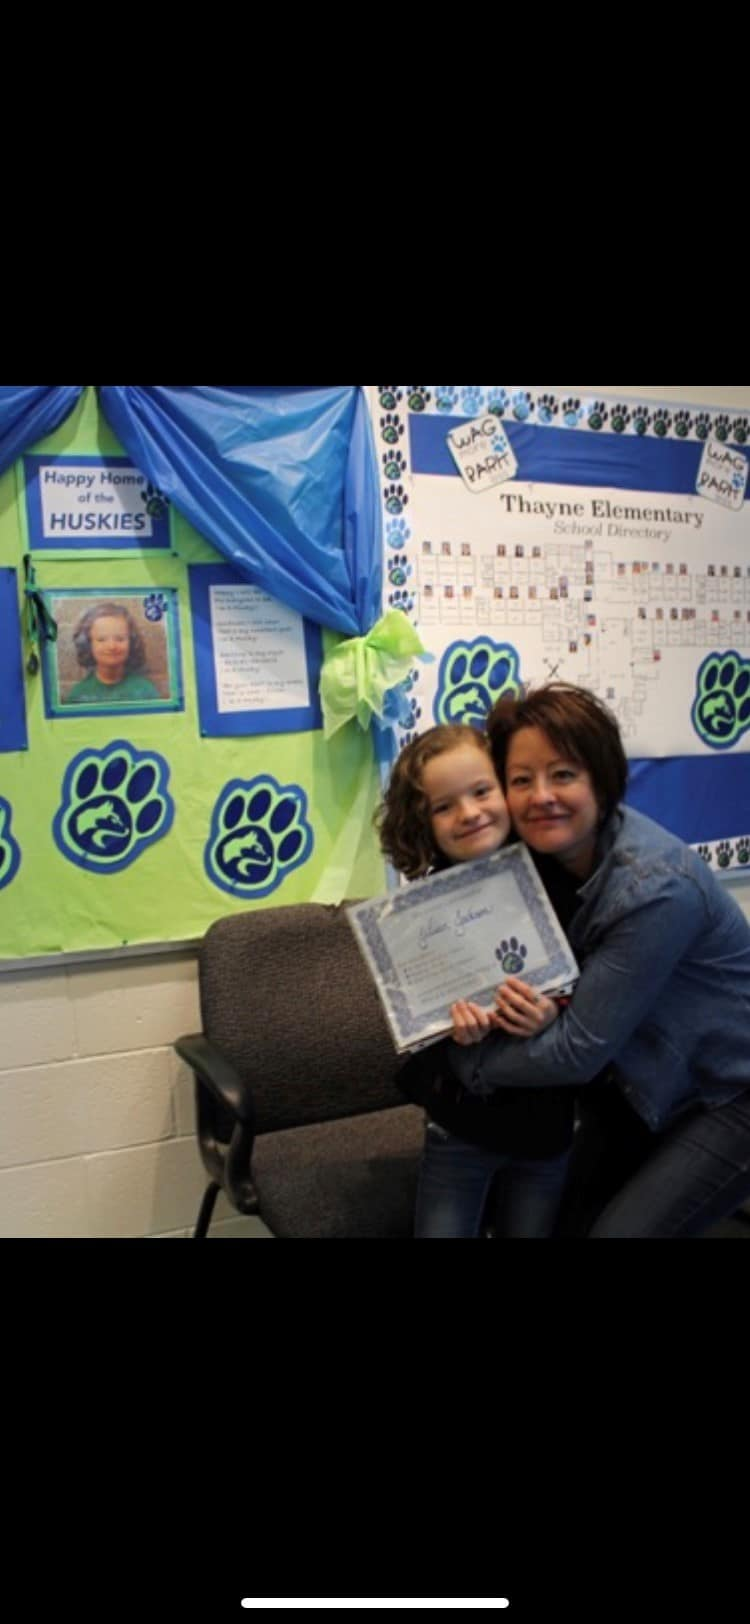 Bonnie and her youngest daughter at a school event